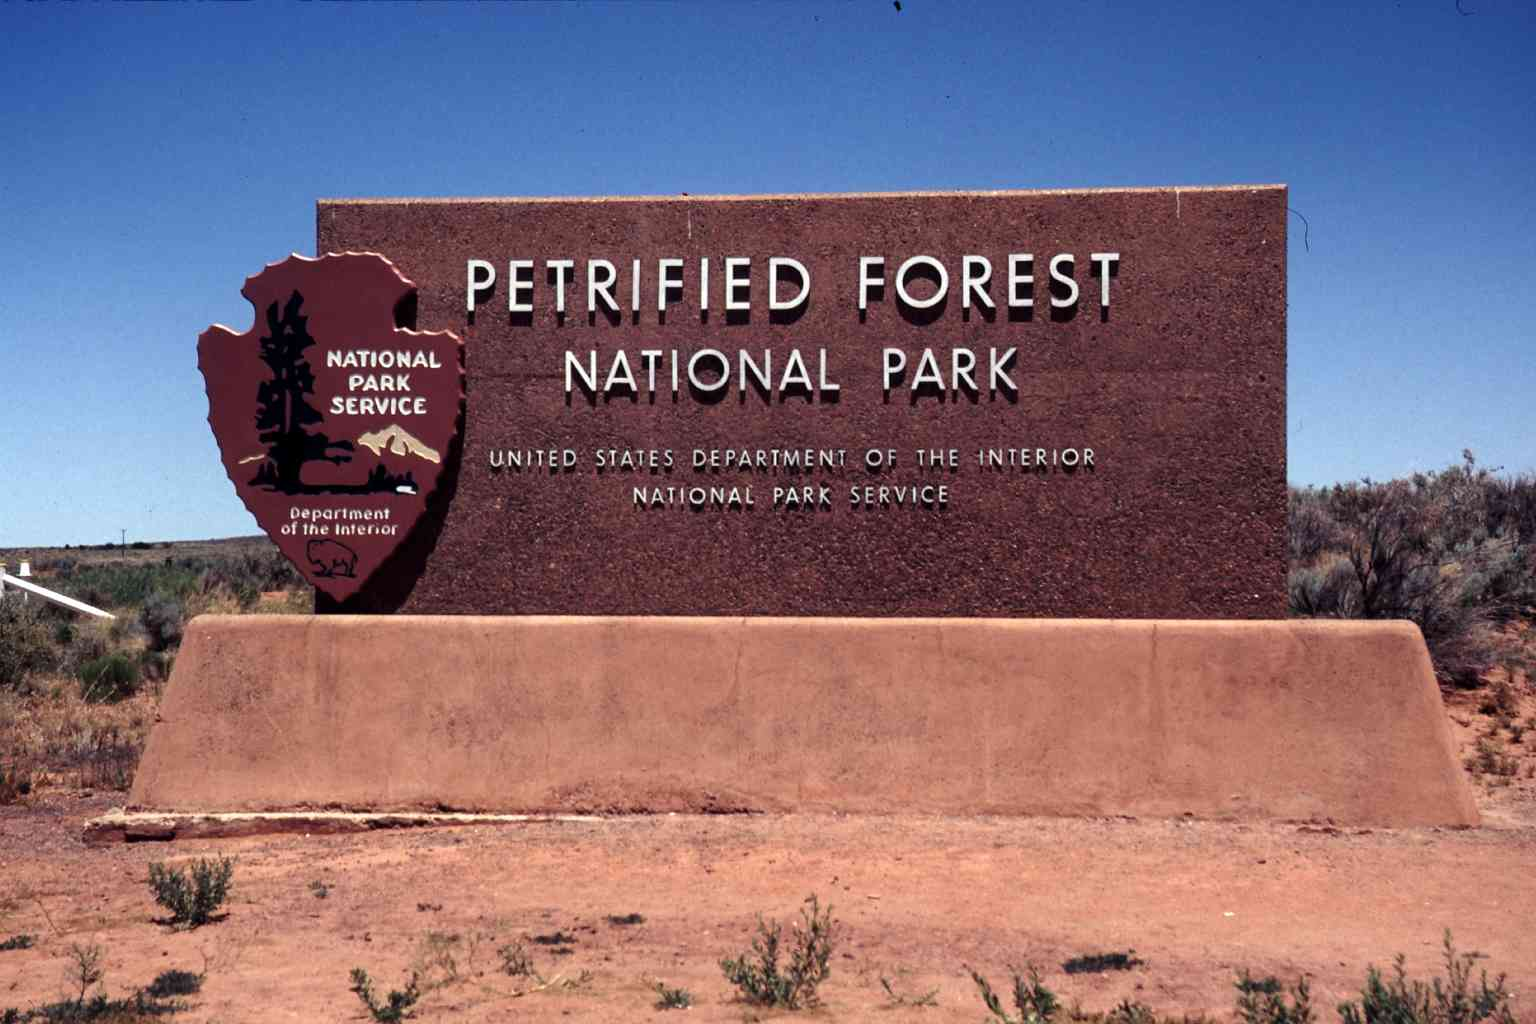 Petrified forest national park pictures posters news and petrified forest national park picture petrified forest np 00 jpg sciox Choice Image